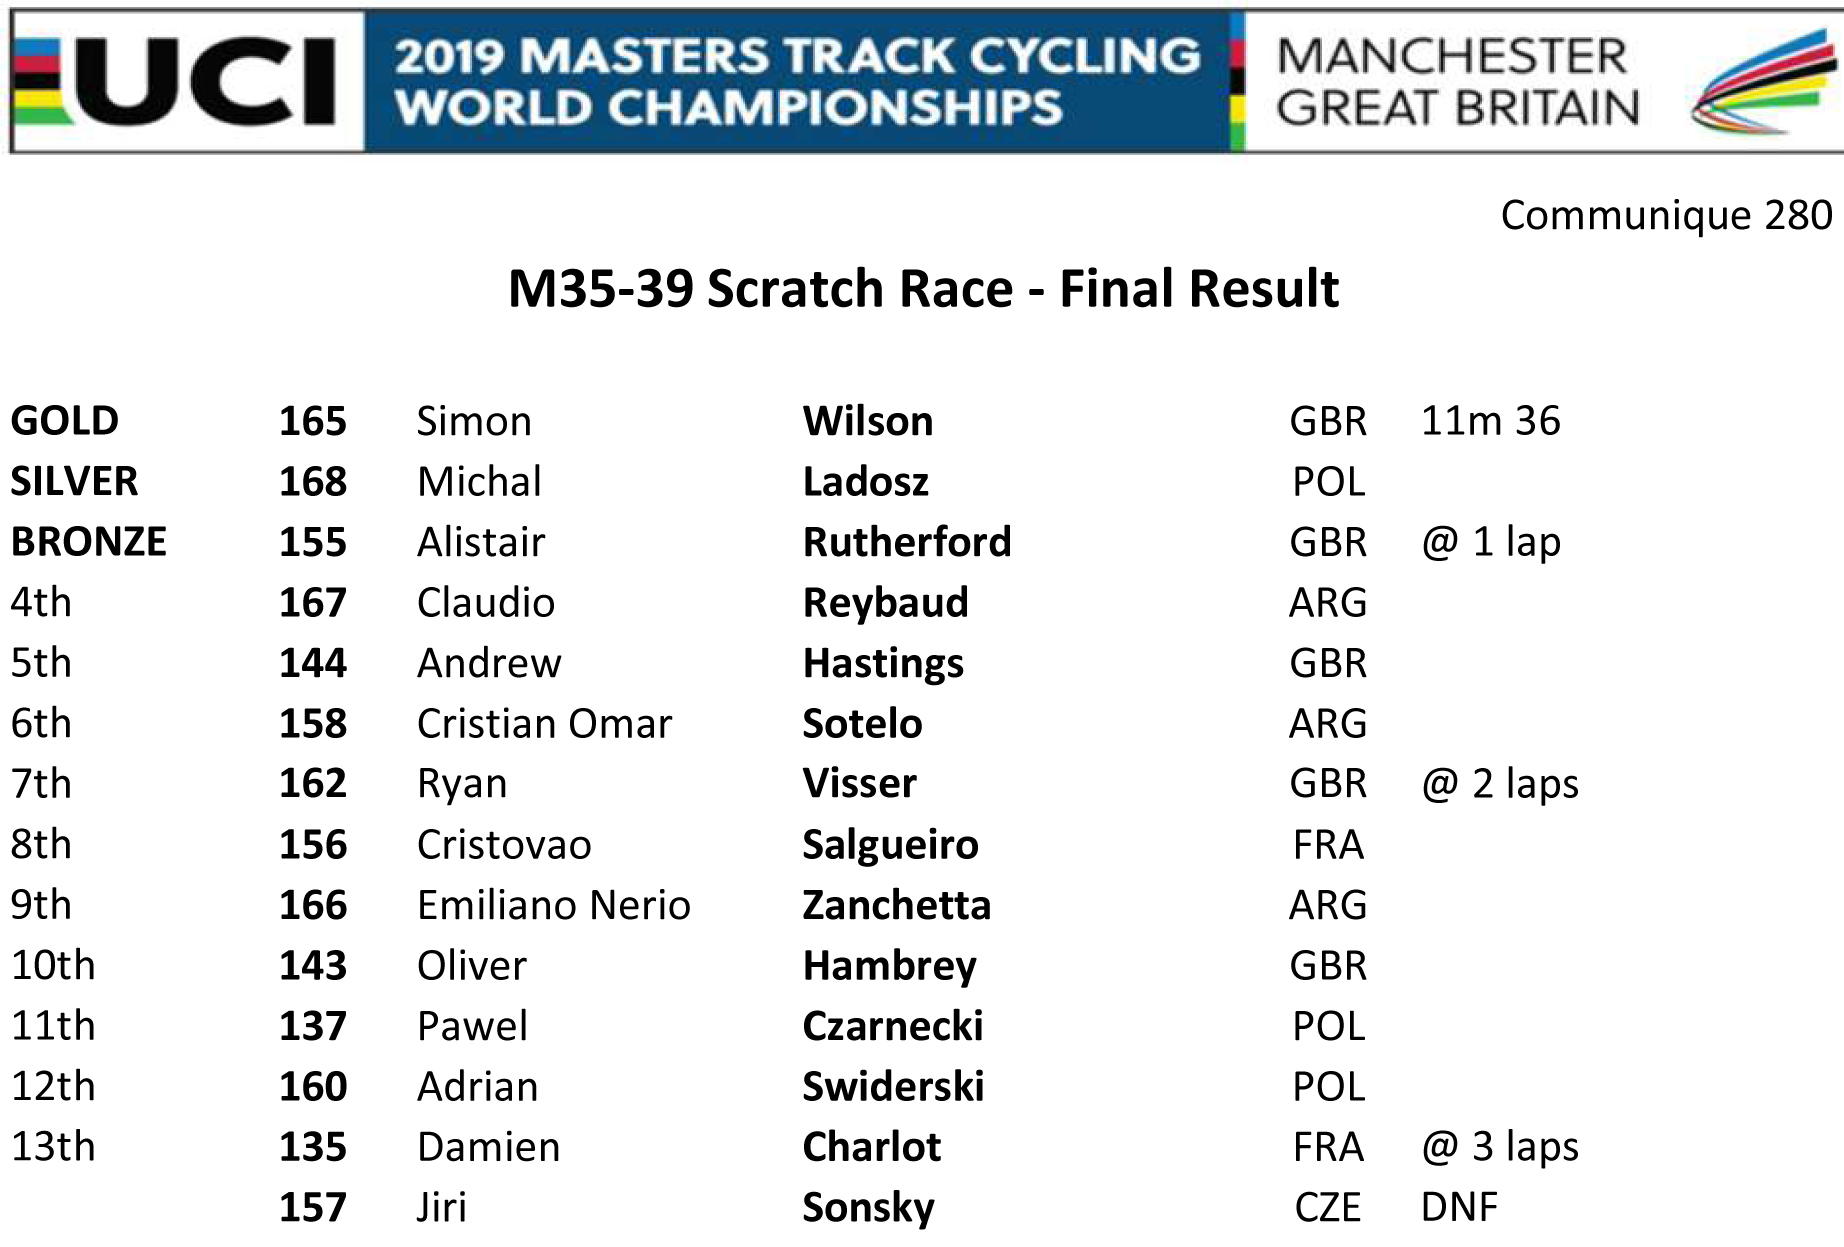 M3539 SCRATCH RACE RESULT